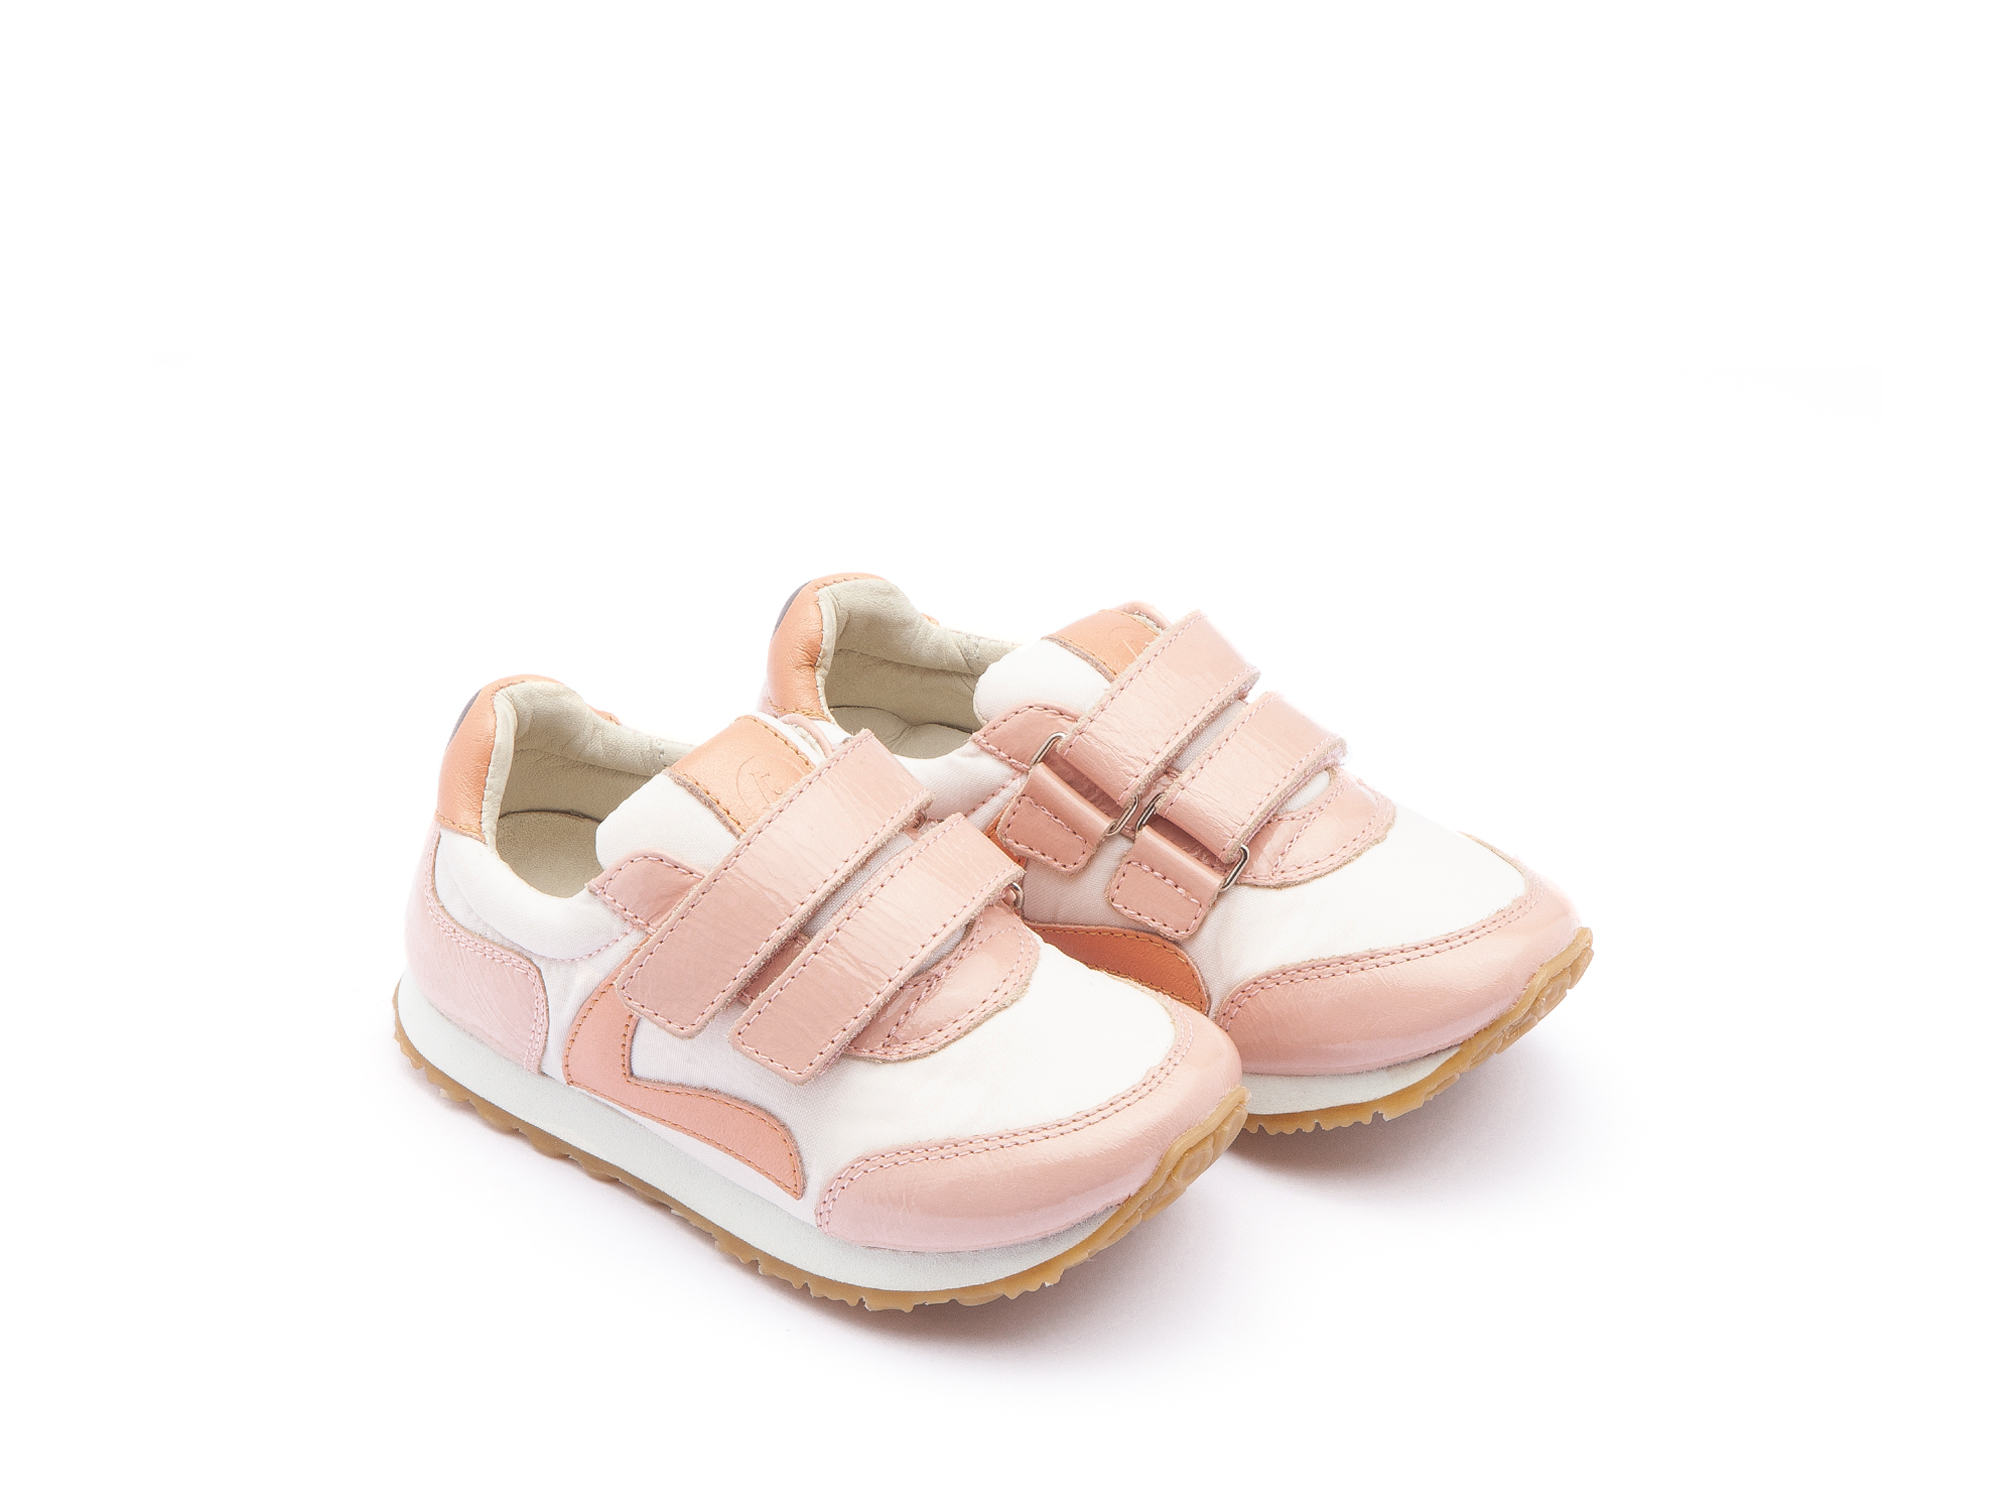 Tênis Little Jump Light Pink Nylon/ Patent Blush Toddler 2 à 4 anos - 0